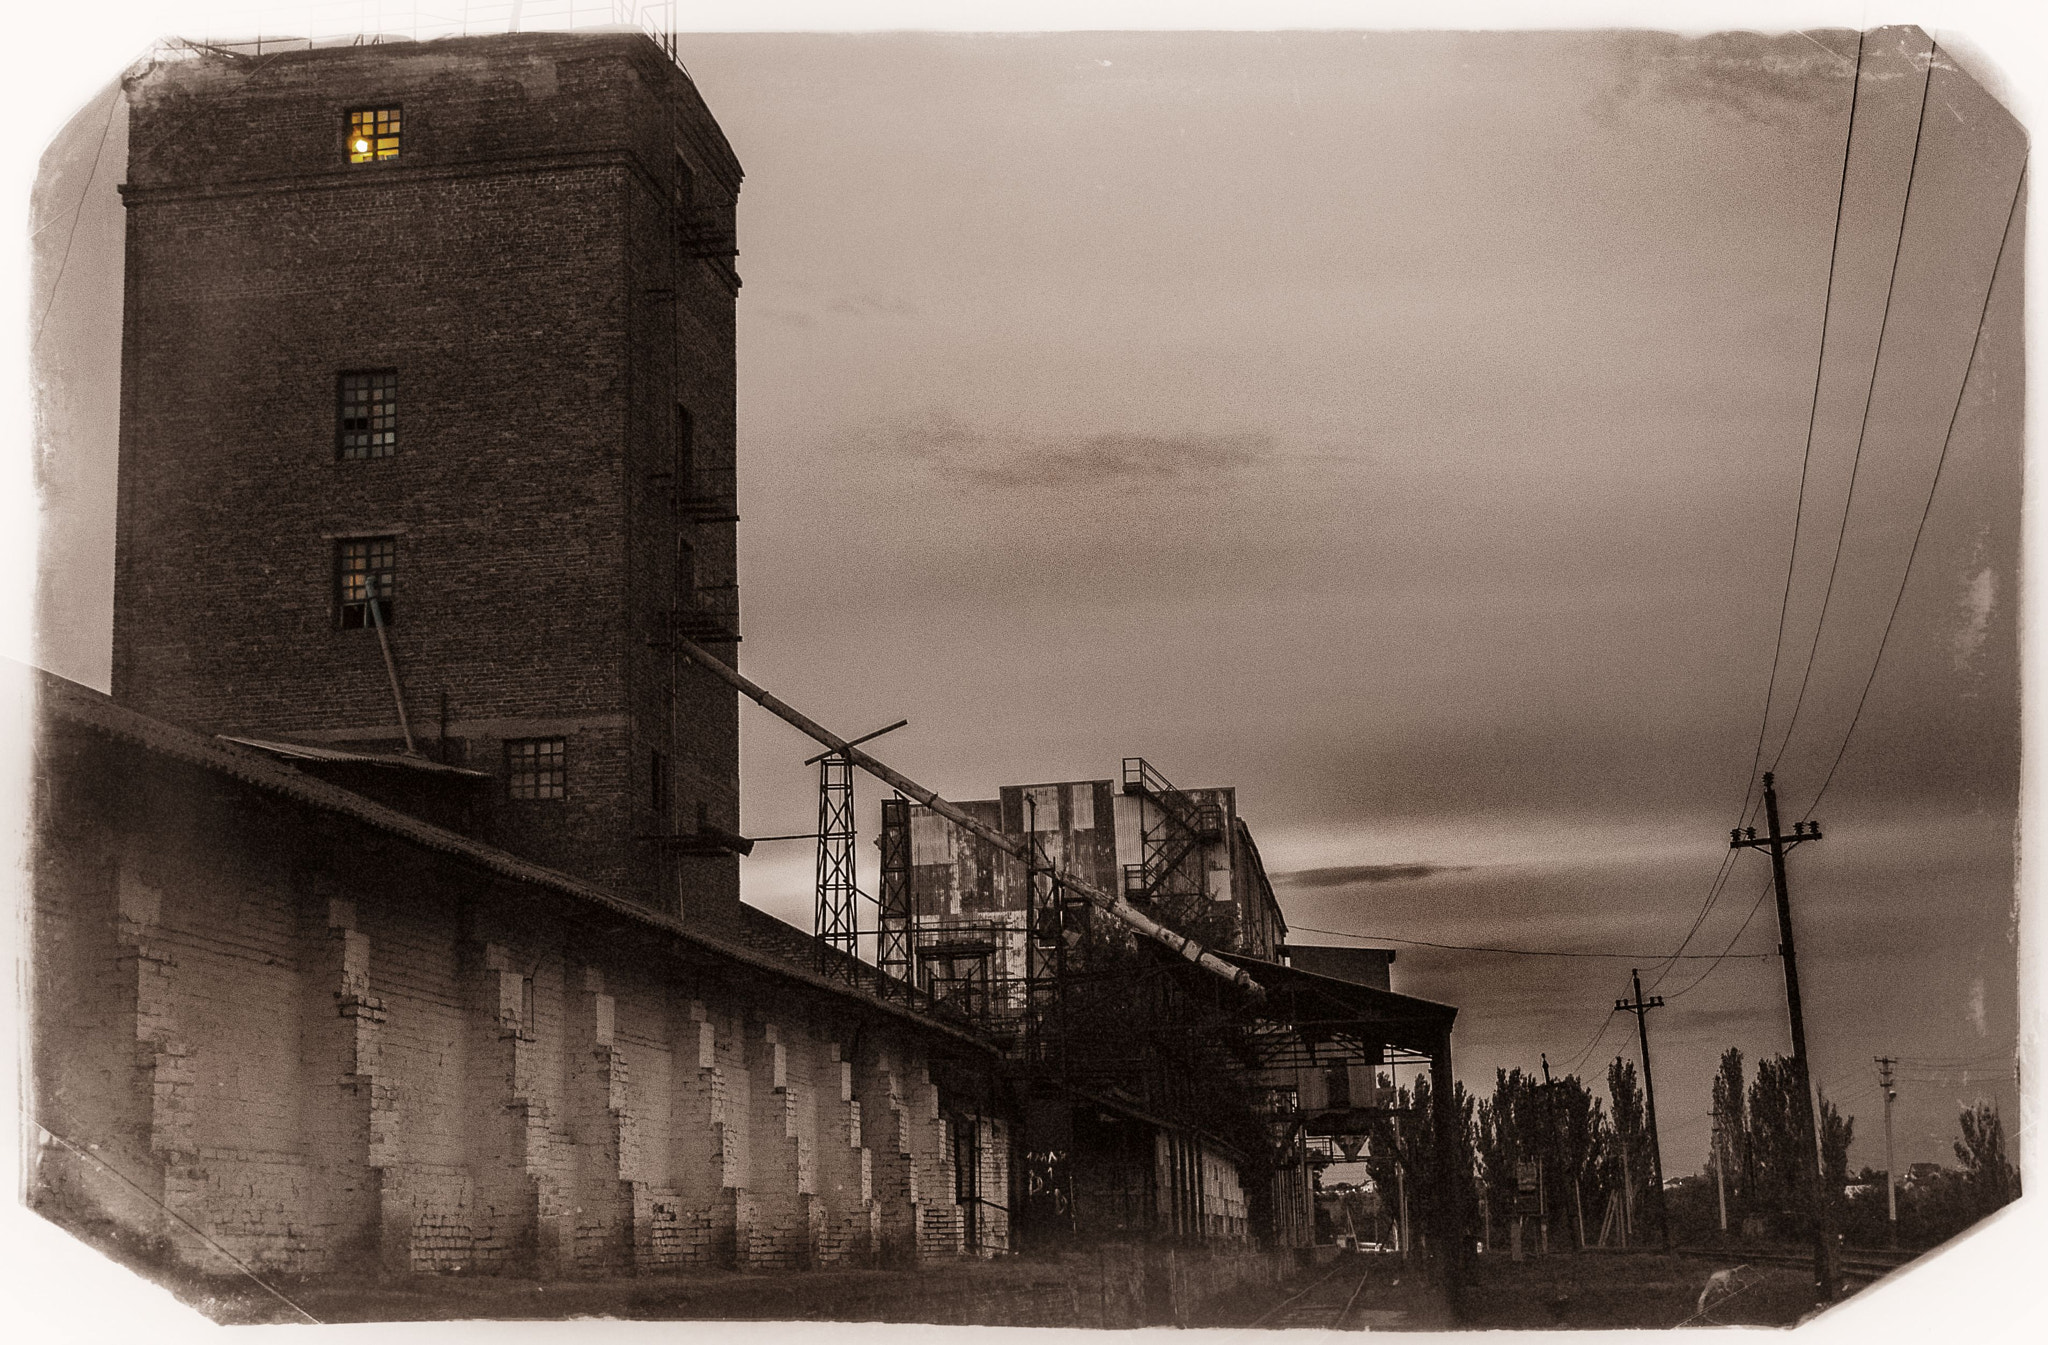 Photograph Old factory by Krayan Storcheus on 500px